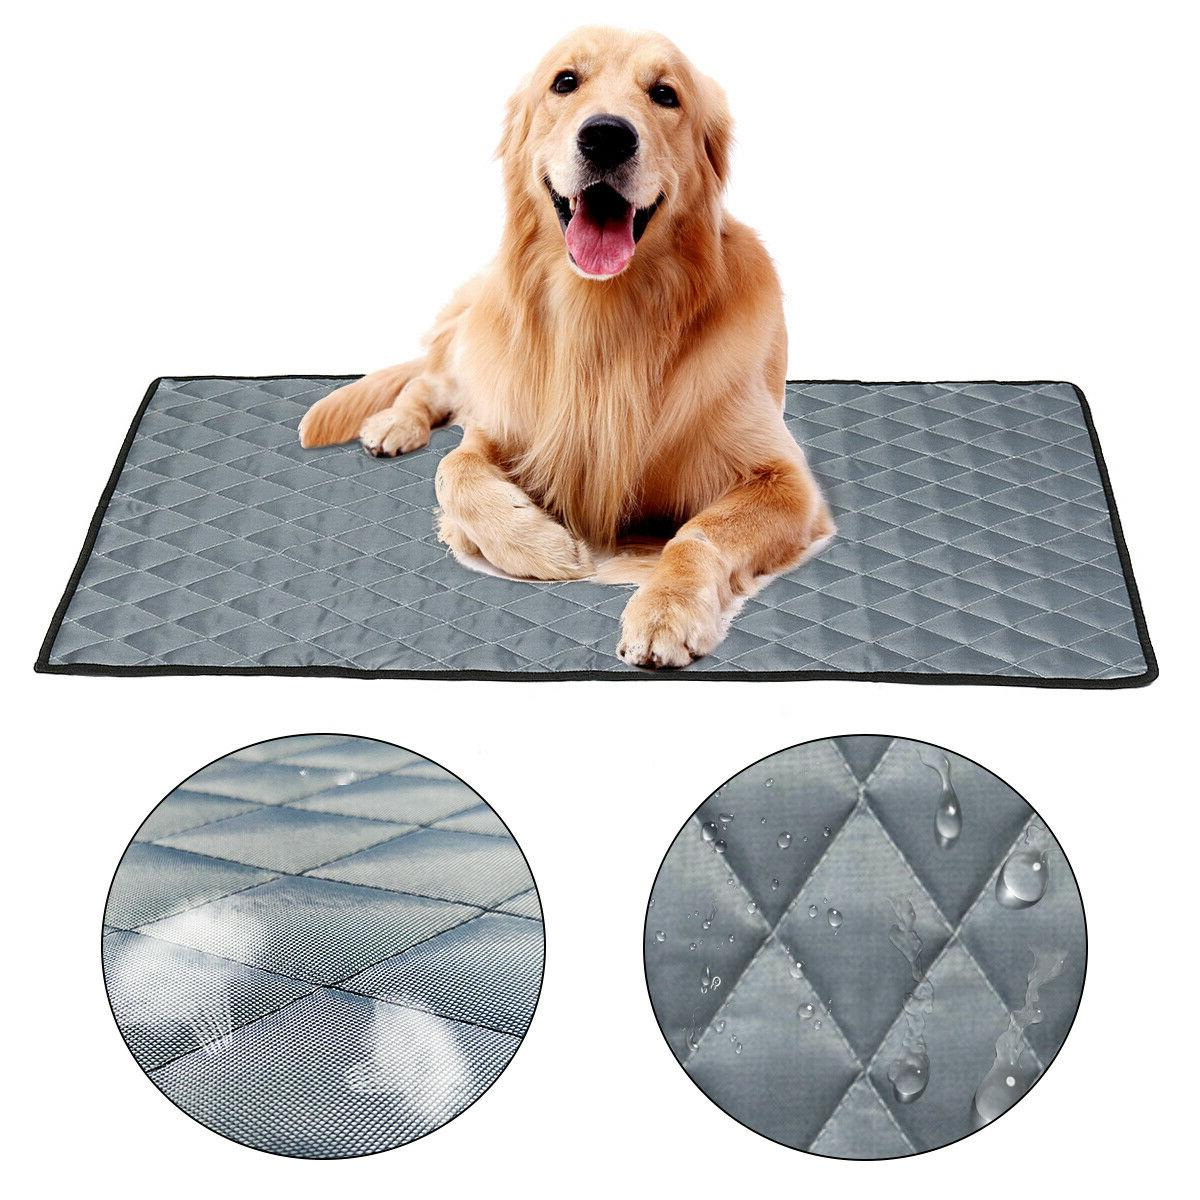 Pet Non-Toxic Cool Pad Bed For Puppy M/L/XL